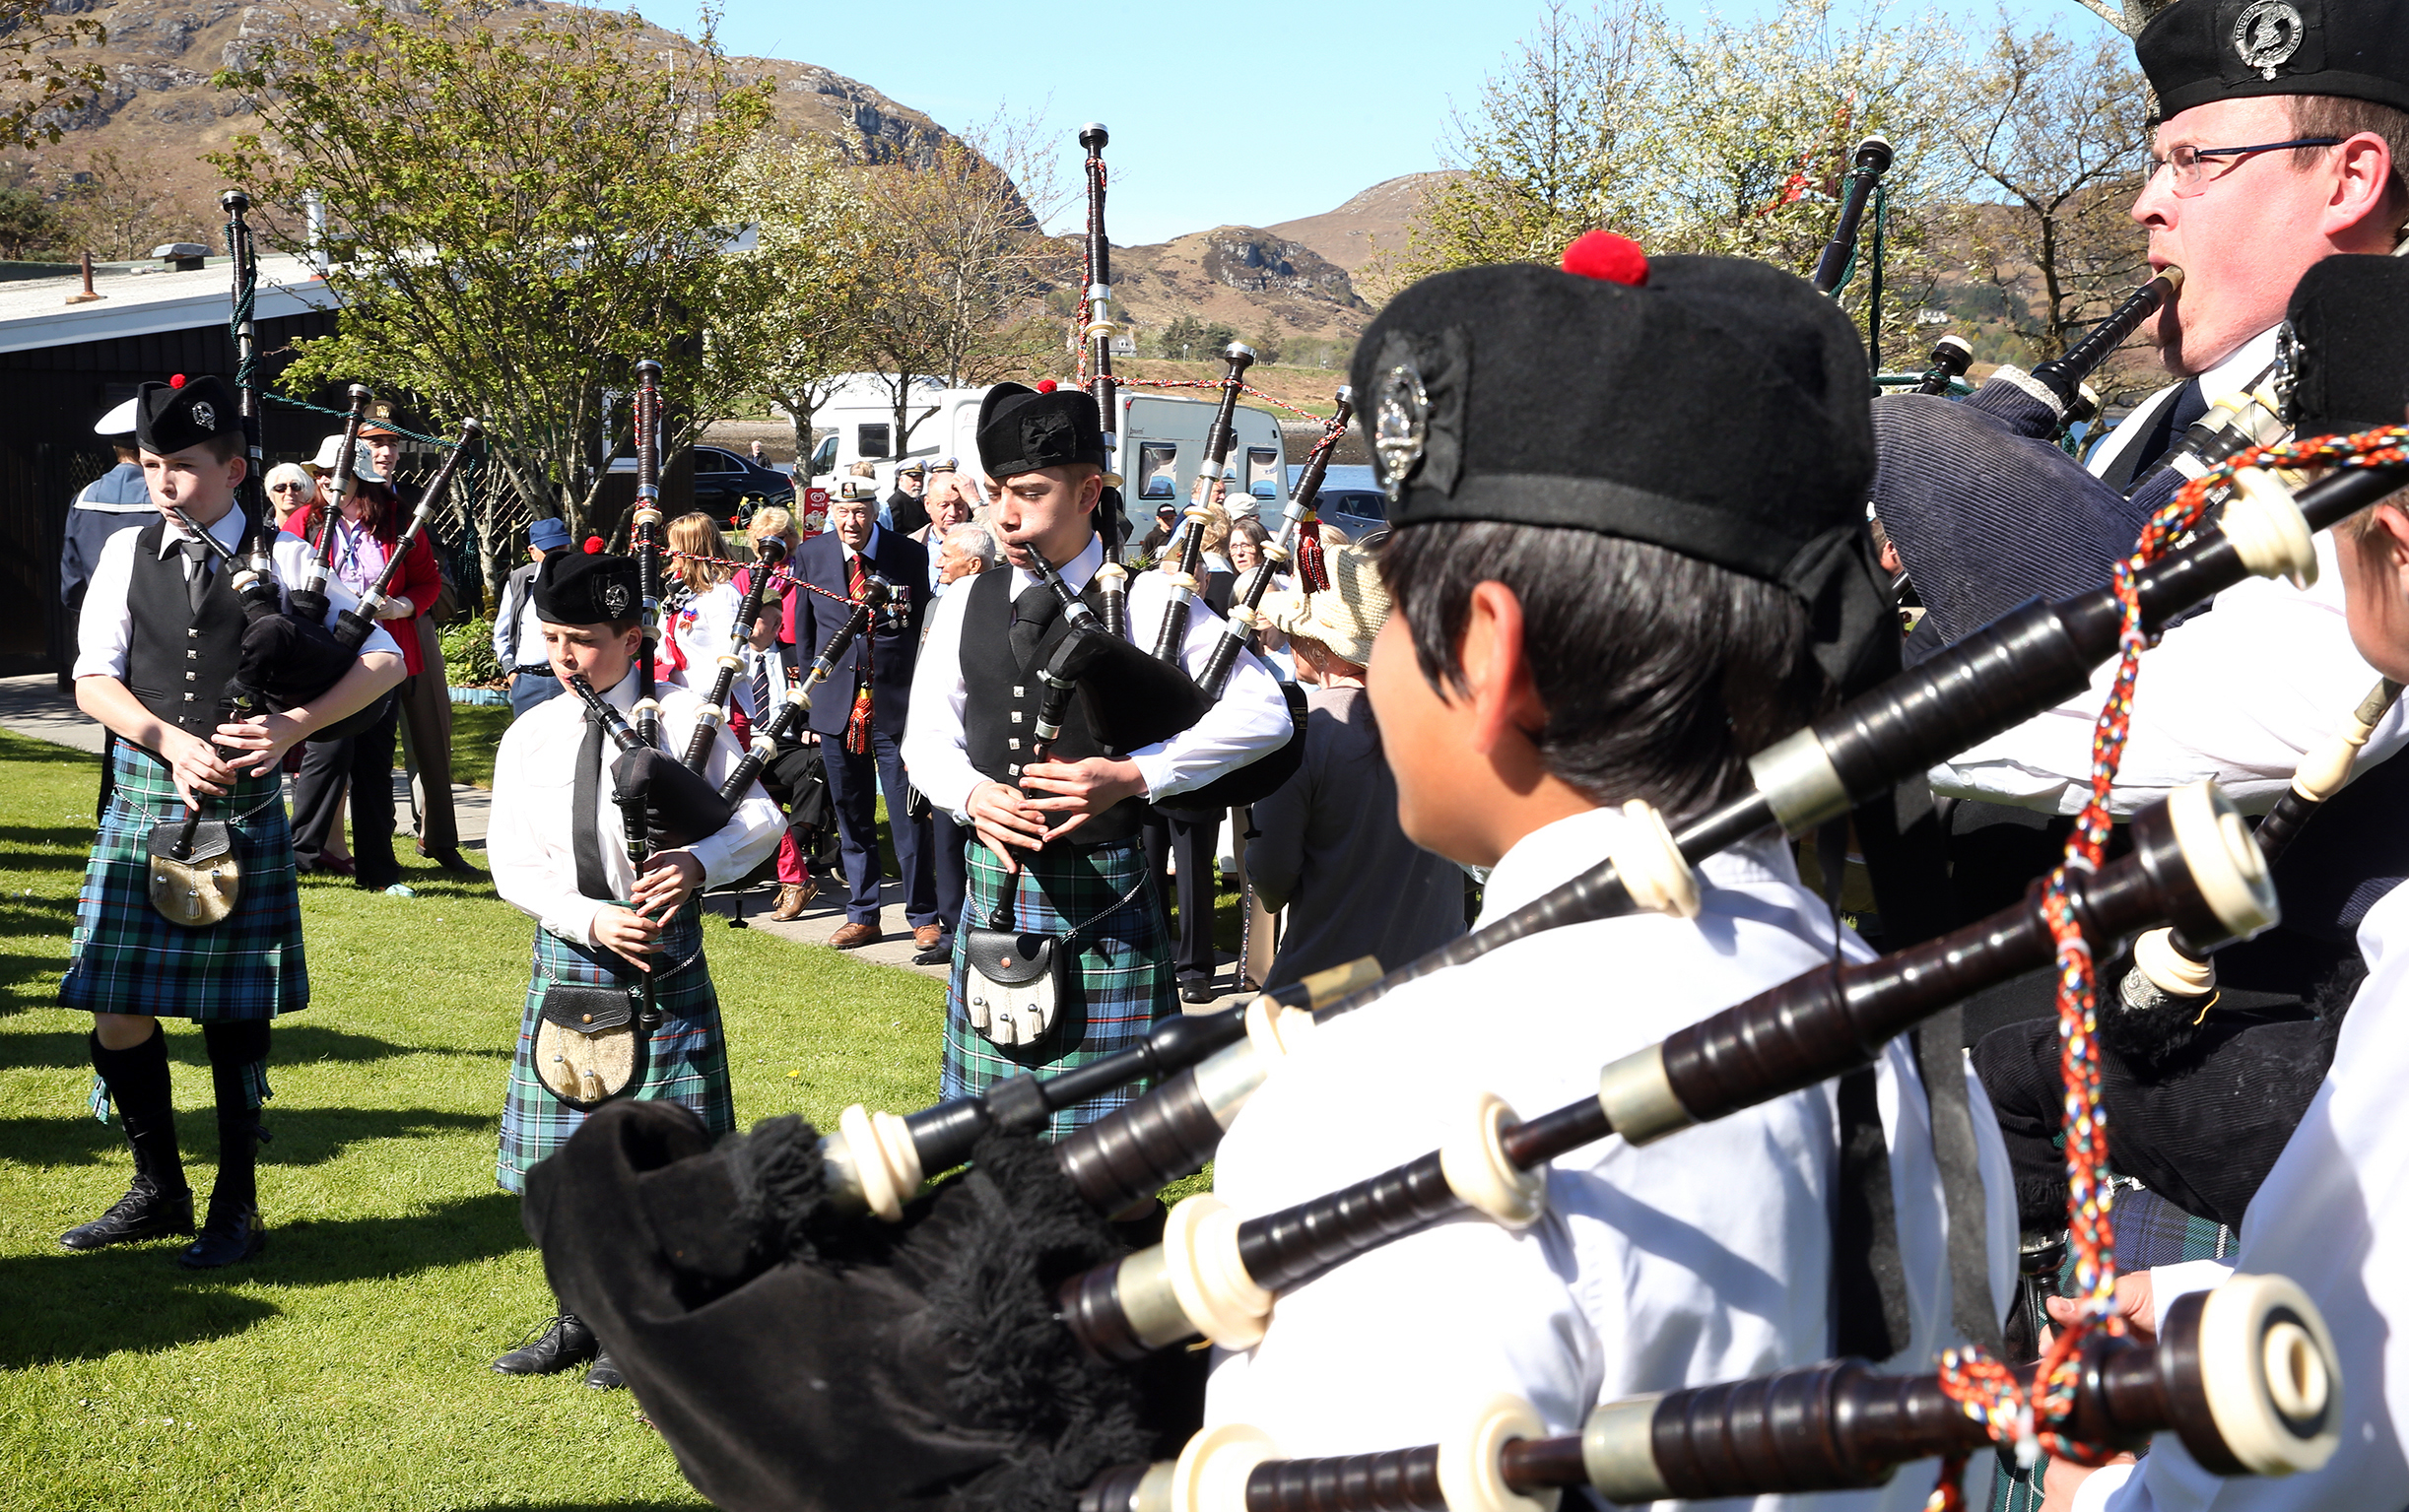 The Gairloch and district pipe band entertained the large crowd throughout the weekend.